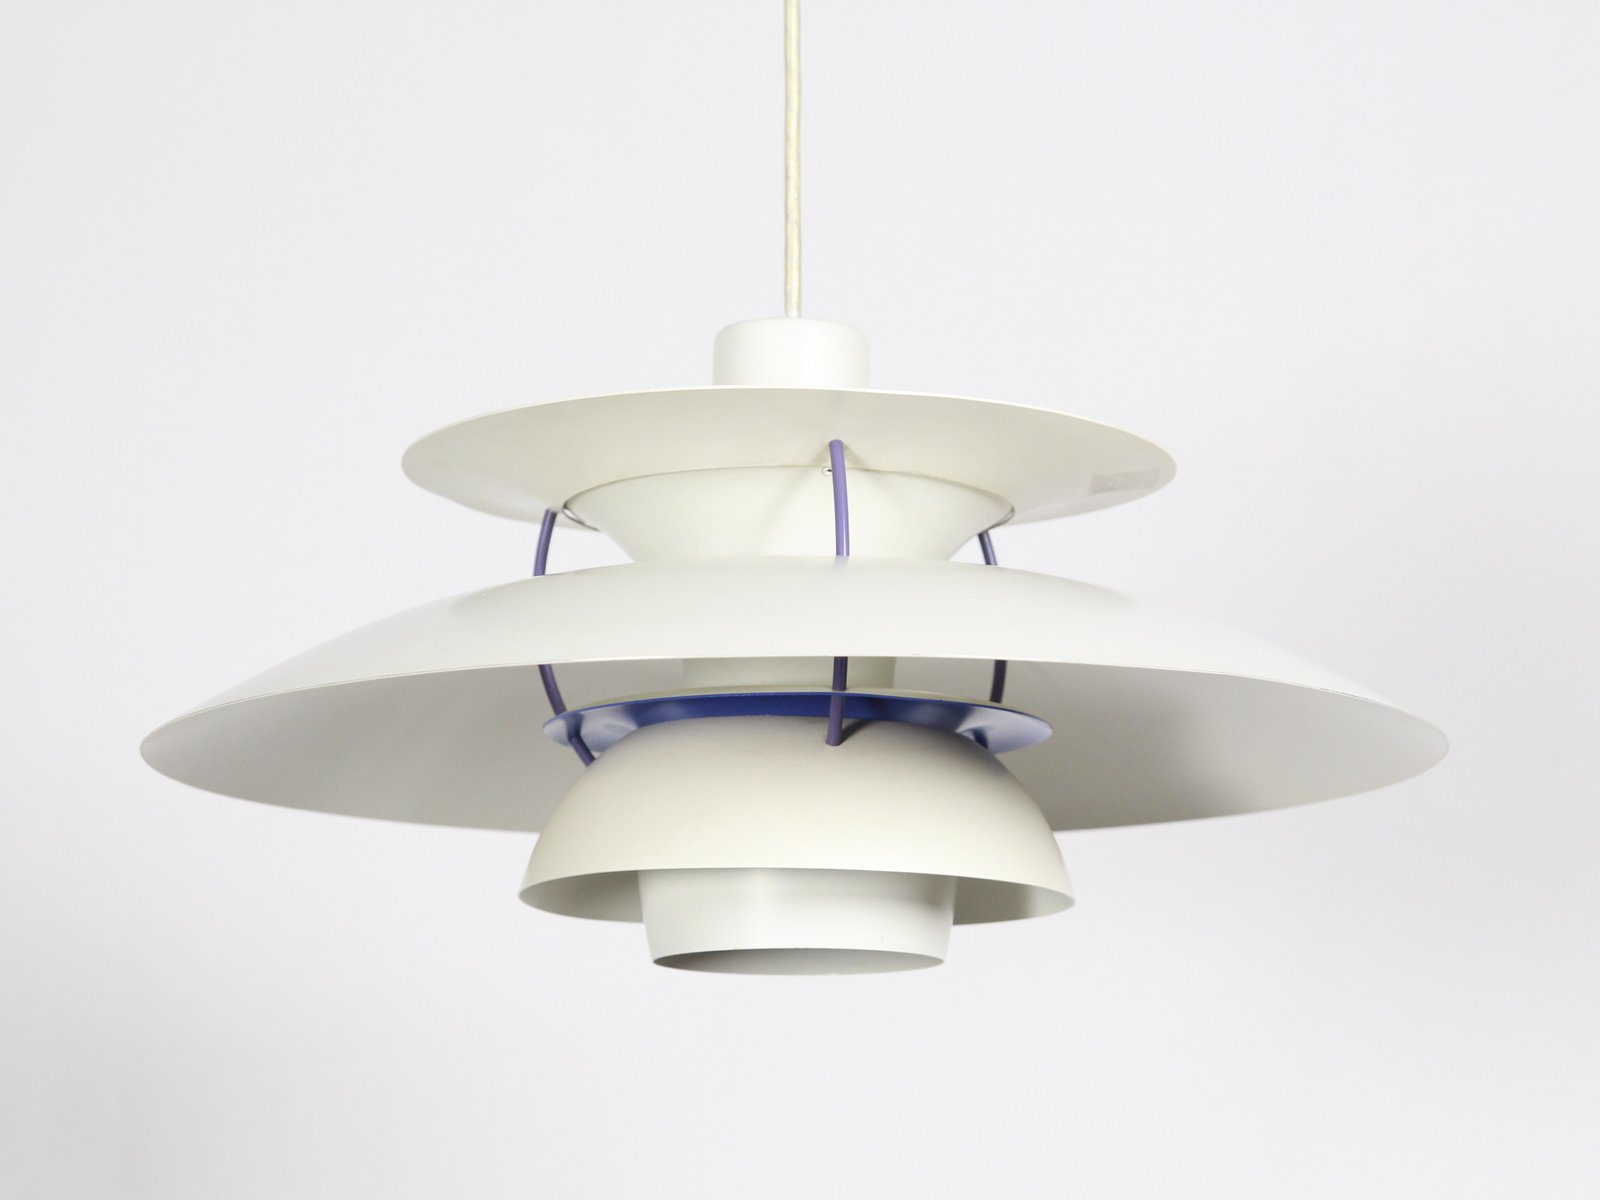 Mid century ph5 pendant lamp by poul henningsen for louis poulsen en mid century ph5 pendant lamp by poul henningsen for louis poulsen en venta en pamono aloadofball Choice Image